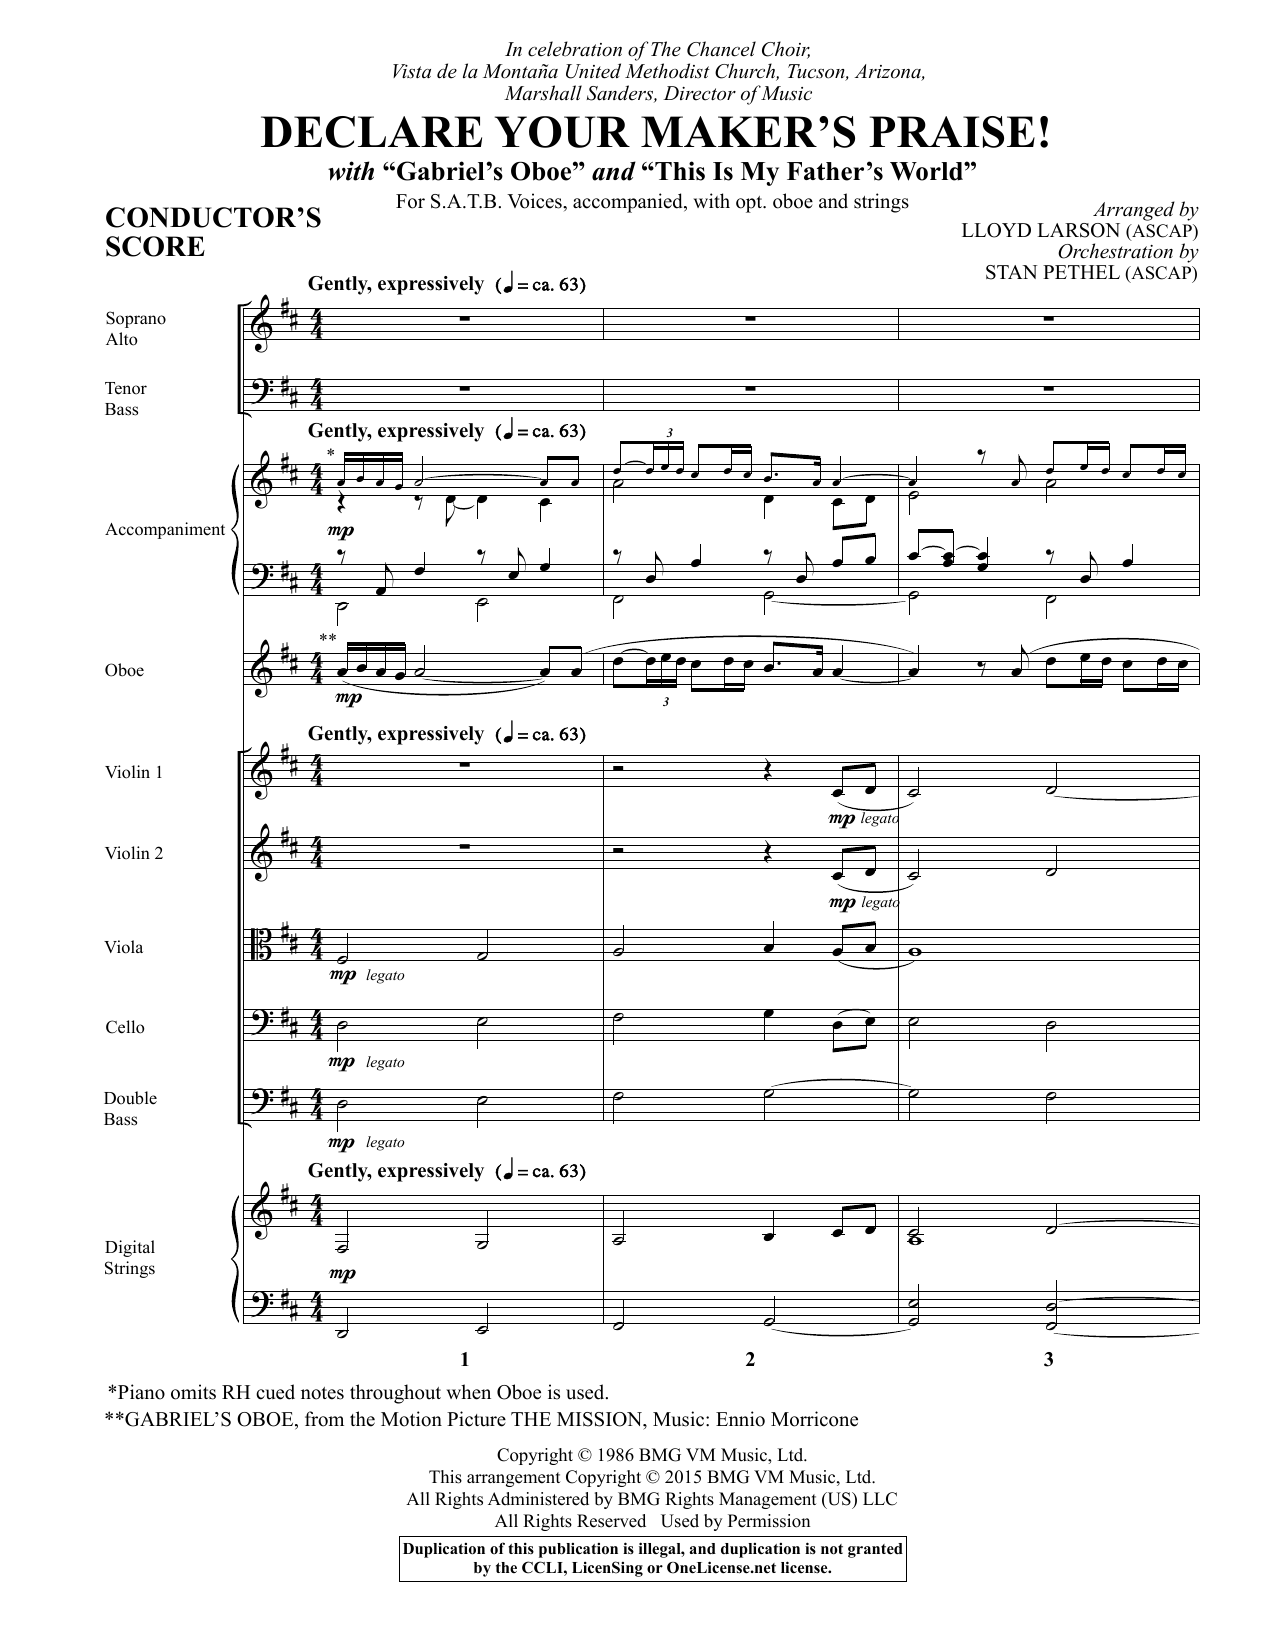 Declare Your Maker's Praise! (COMPLETE) sheet music for orchestra/band by Lloyd Larson and Ennio Morricone. Score Image Preview.